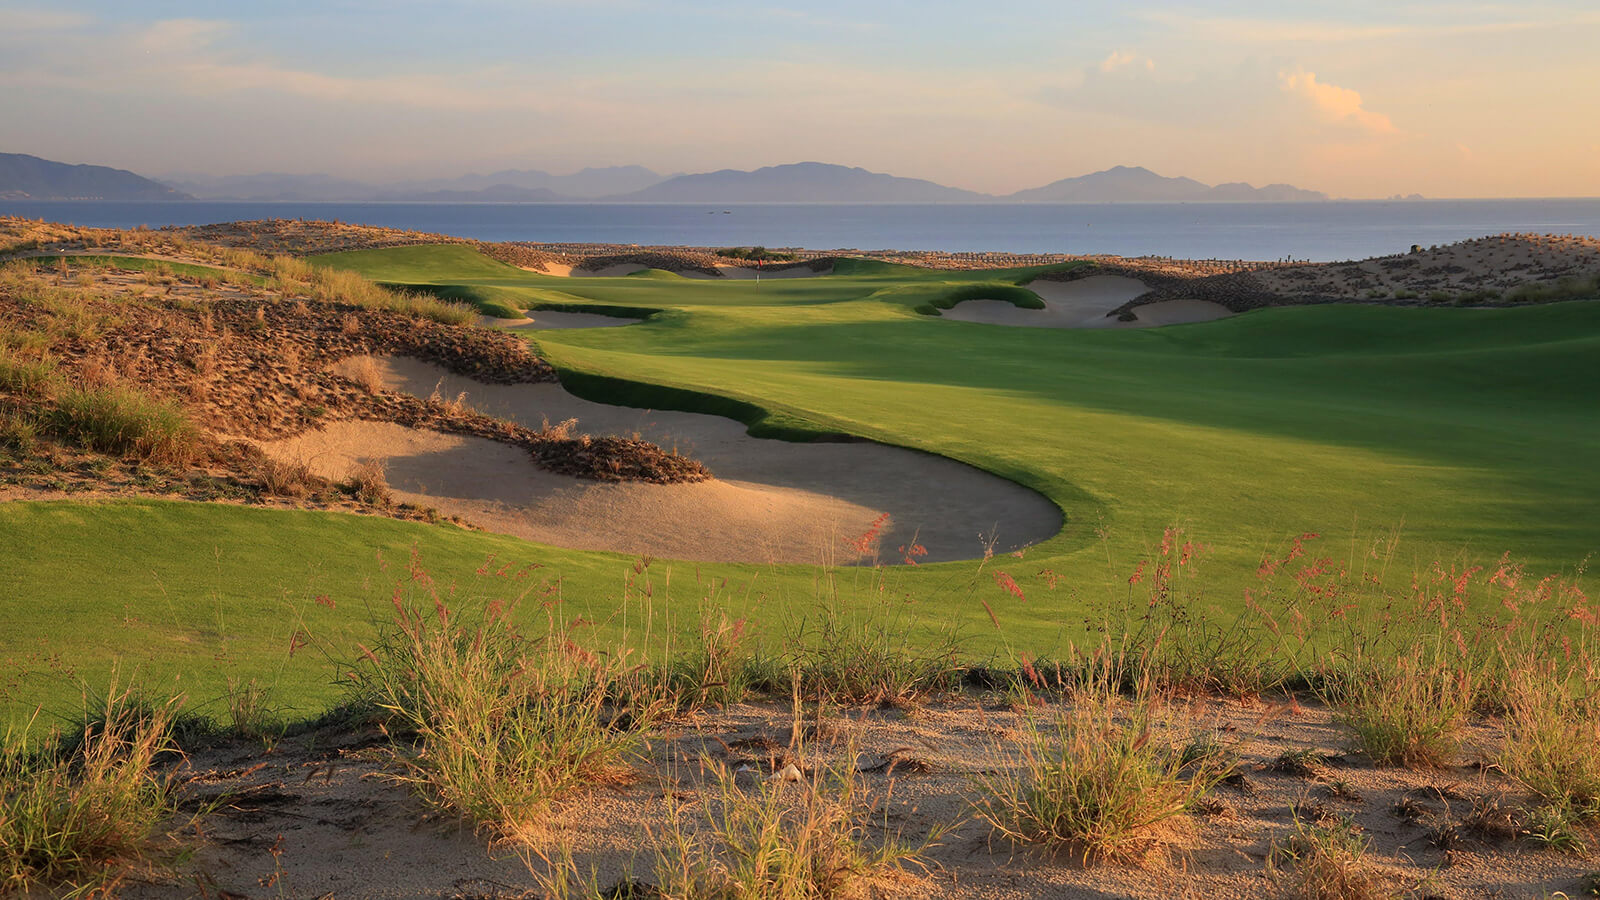 The 18th hole at KN Golf Links Cam Ranh offers stunning views of the ocean